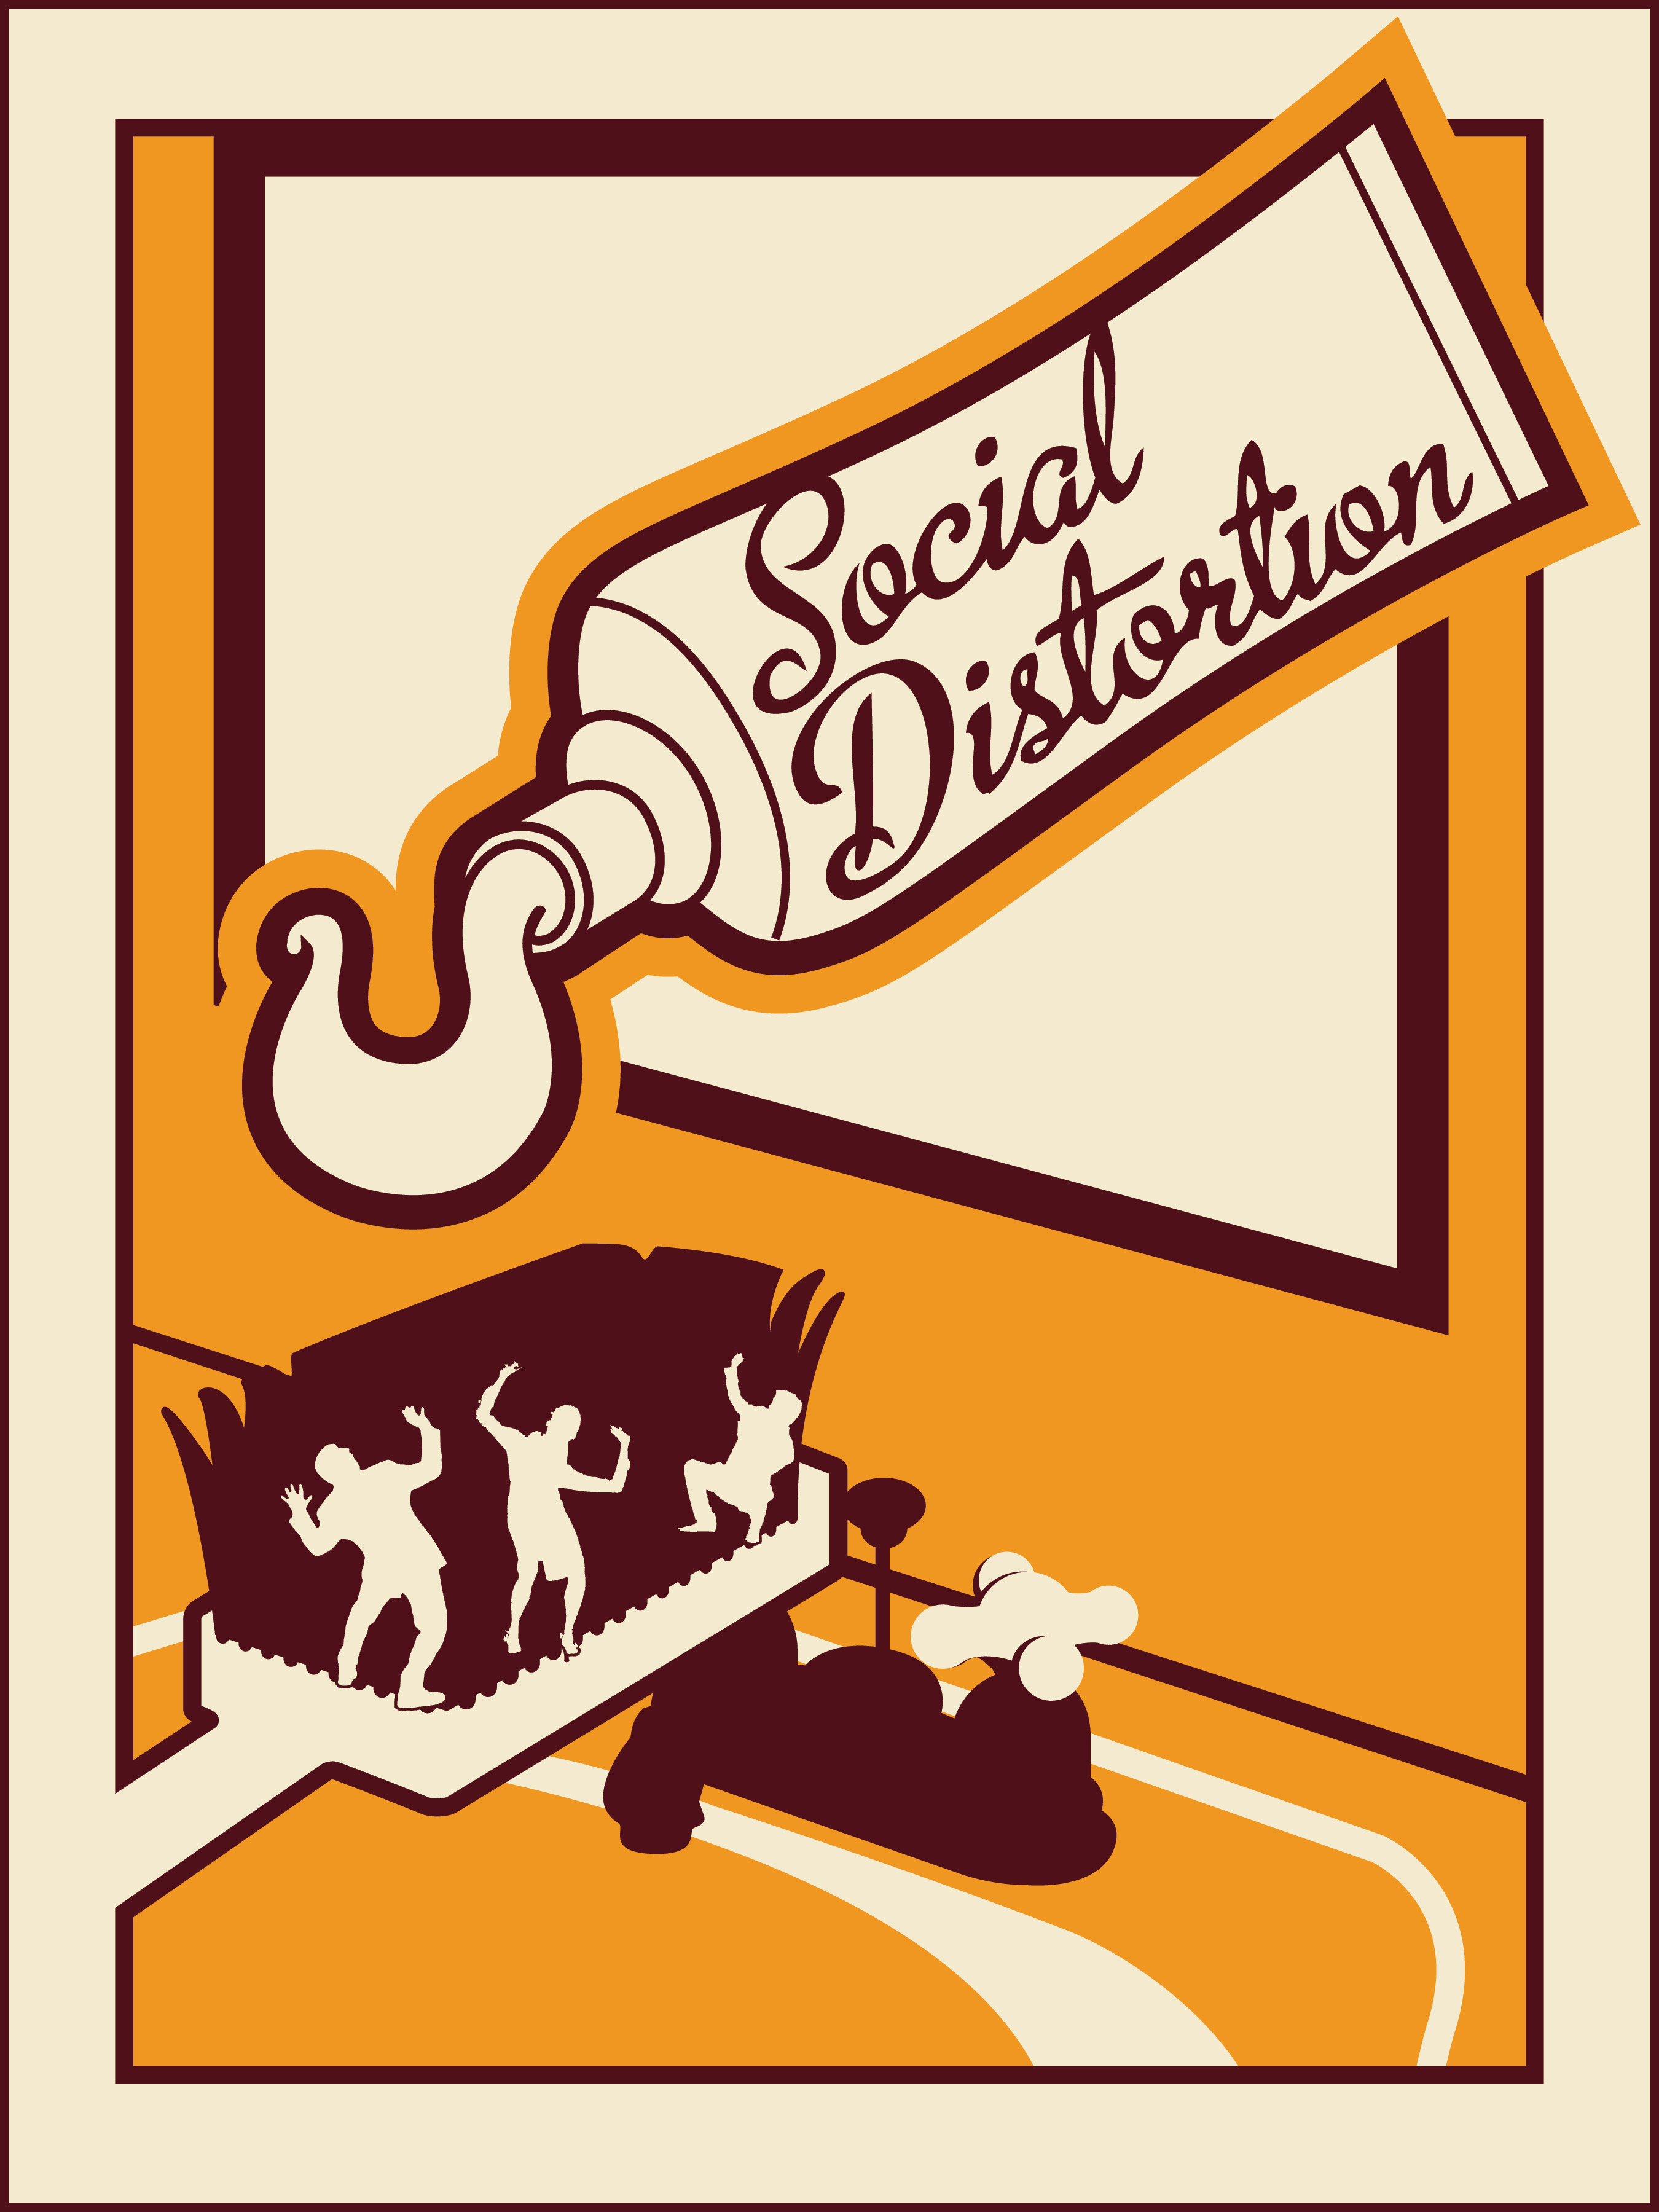 Social Distortion / *UPDATED* - image 14 - student project